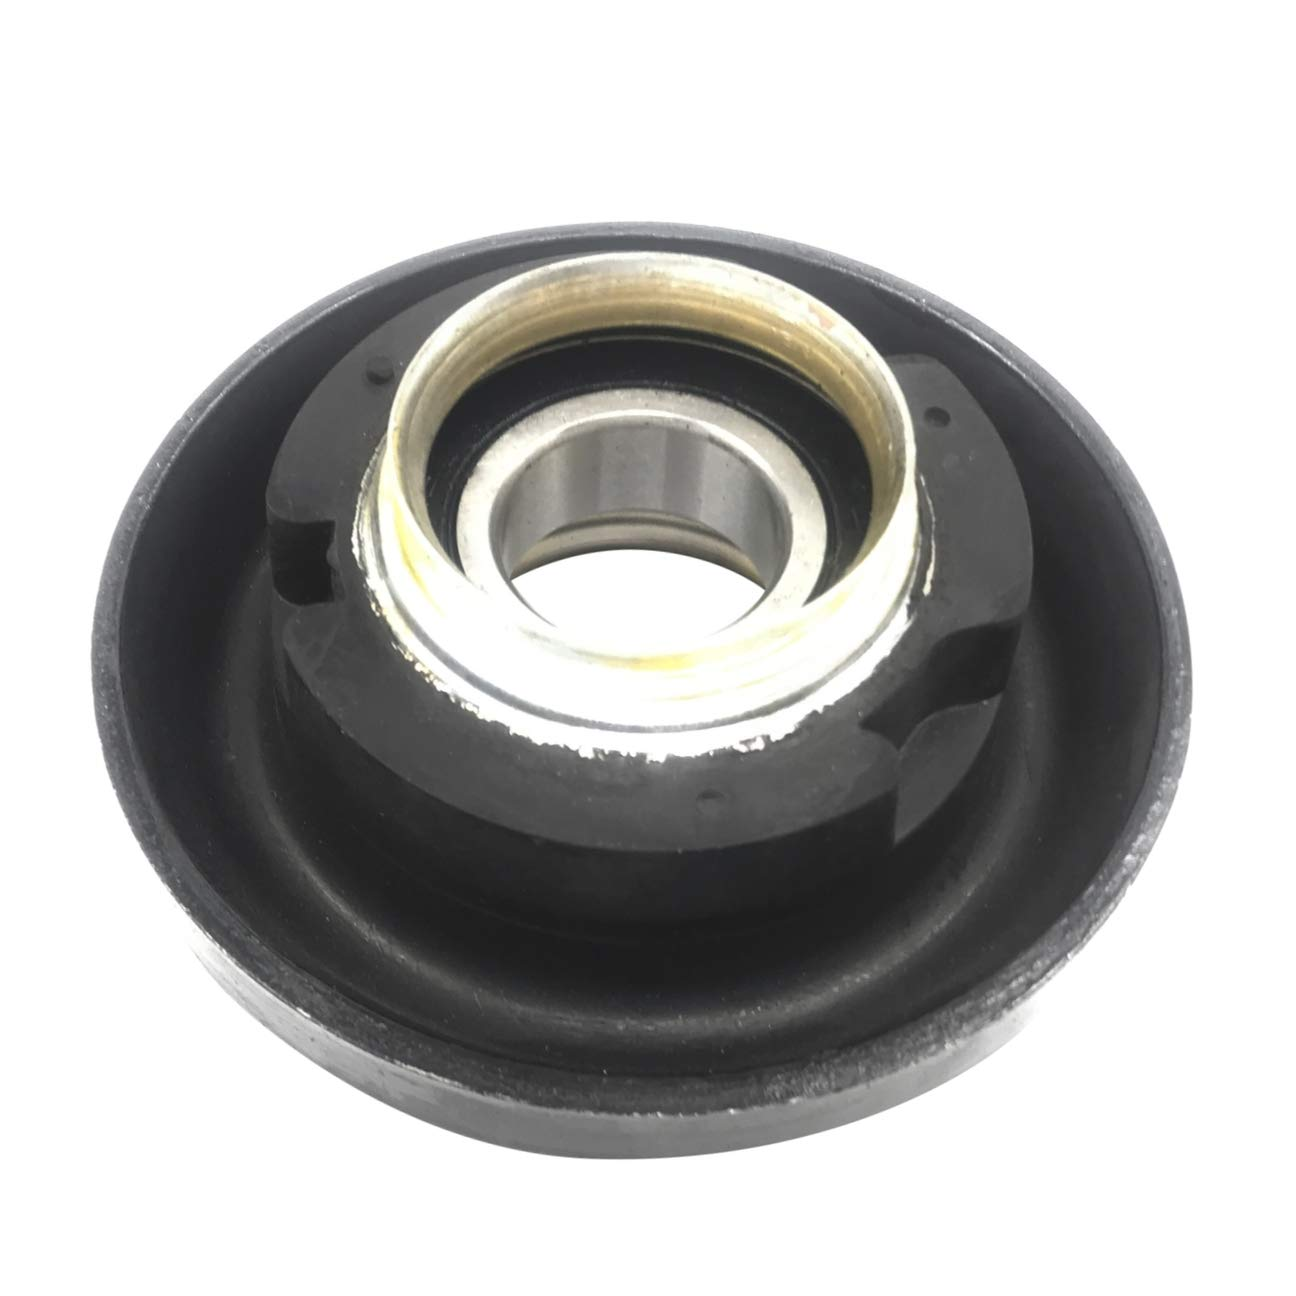 SKP SK934220 Drive Shaft Center Support Bearing